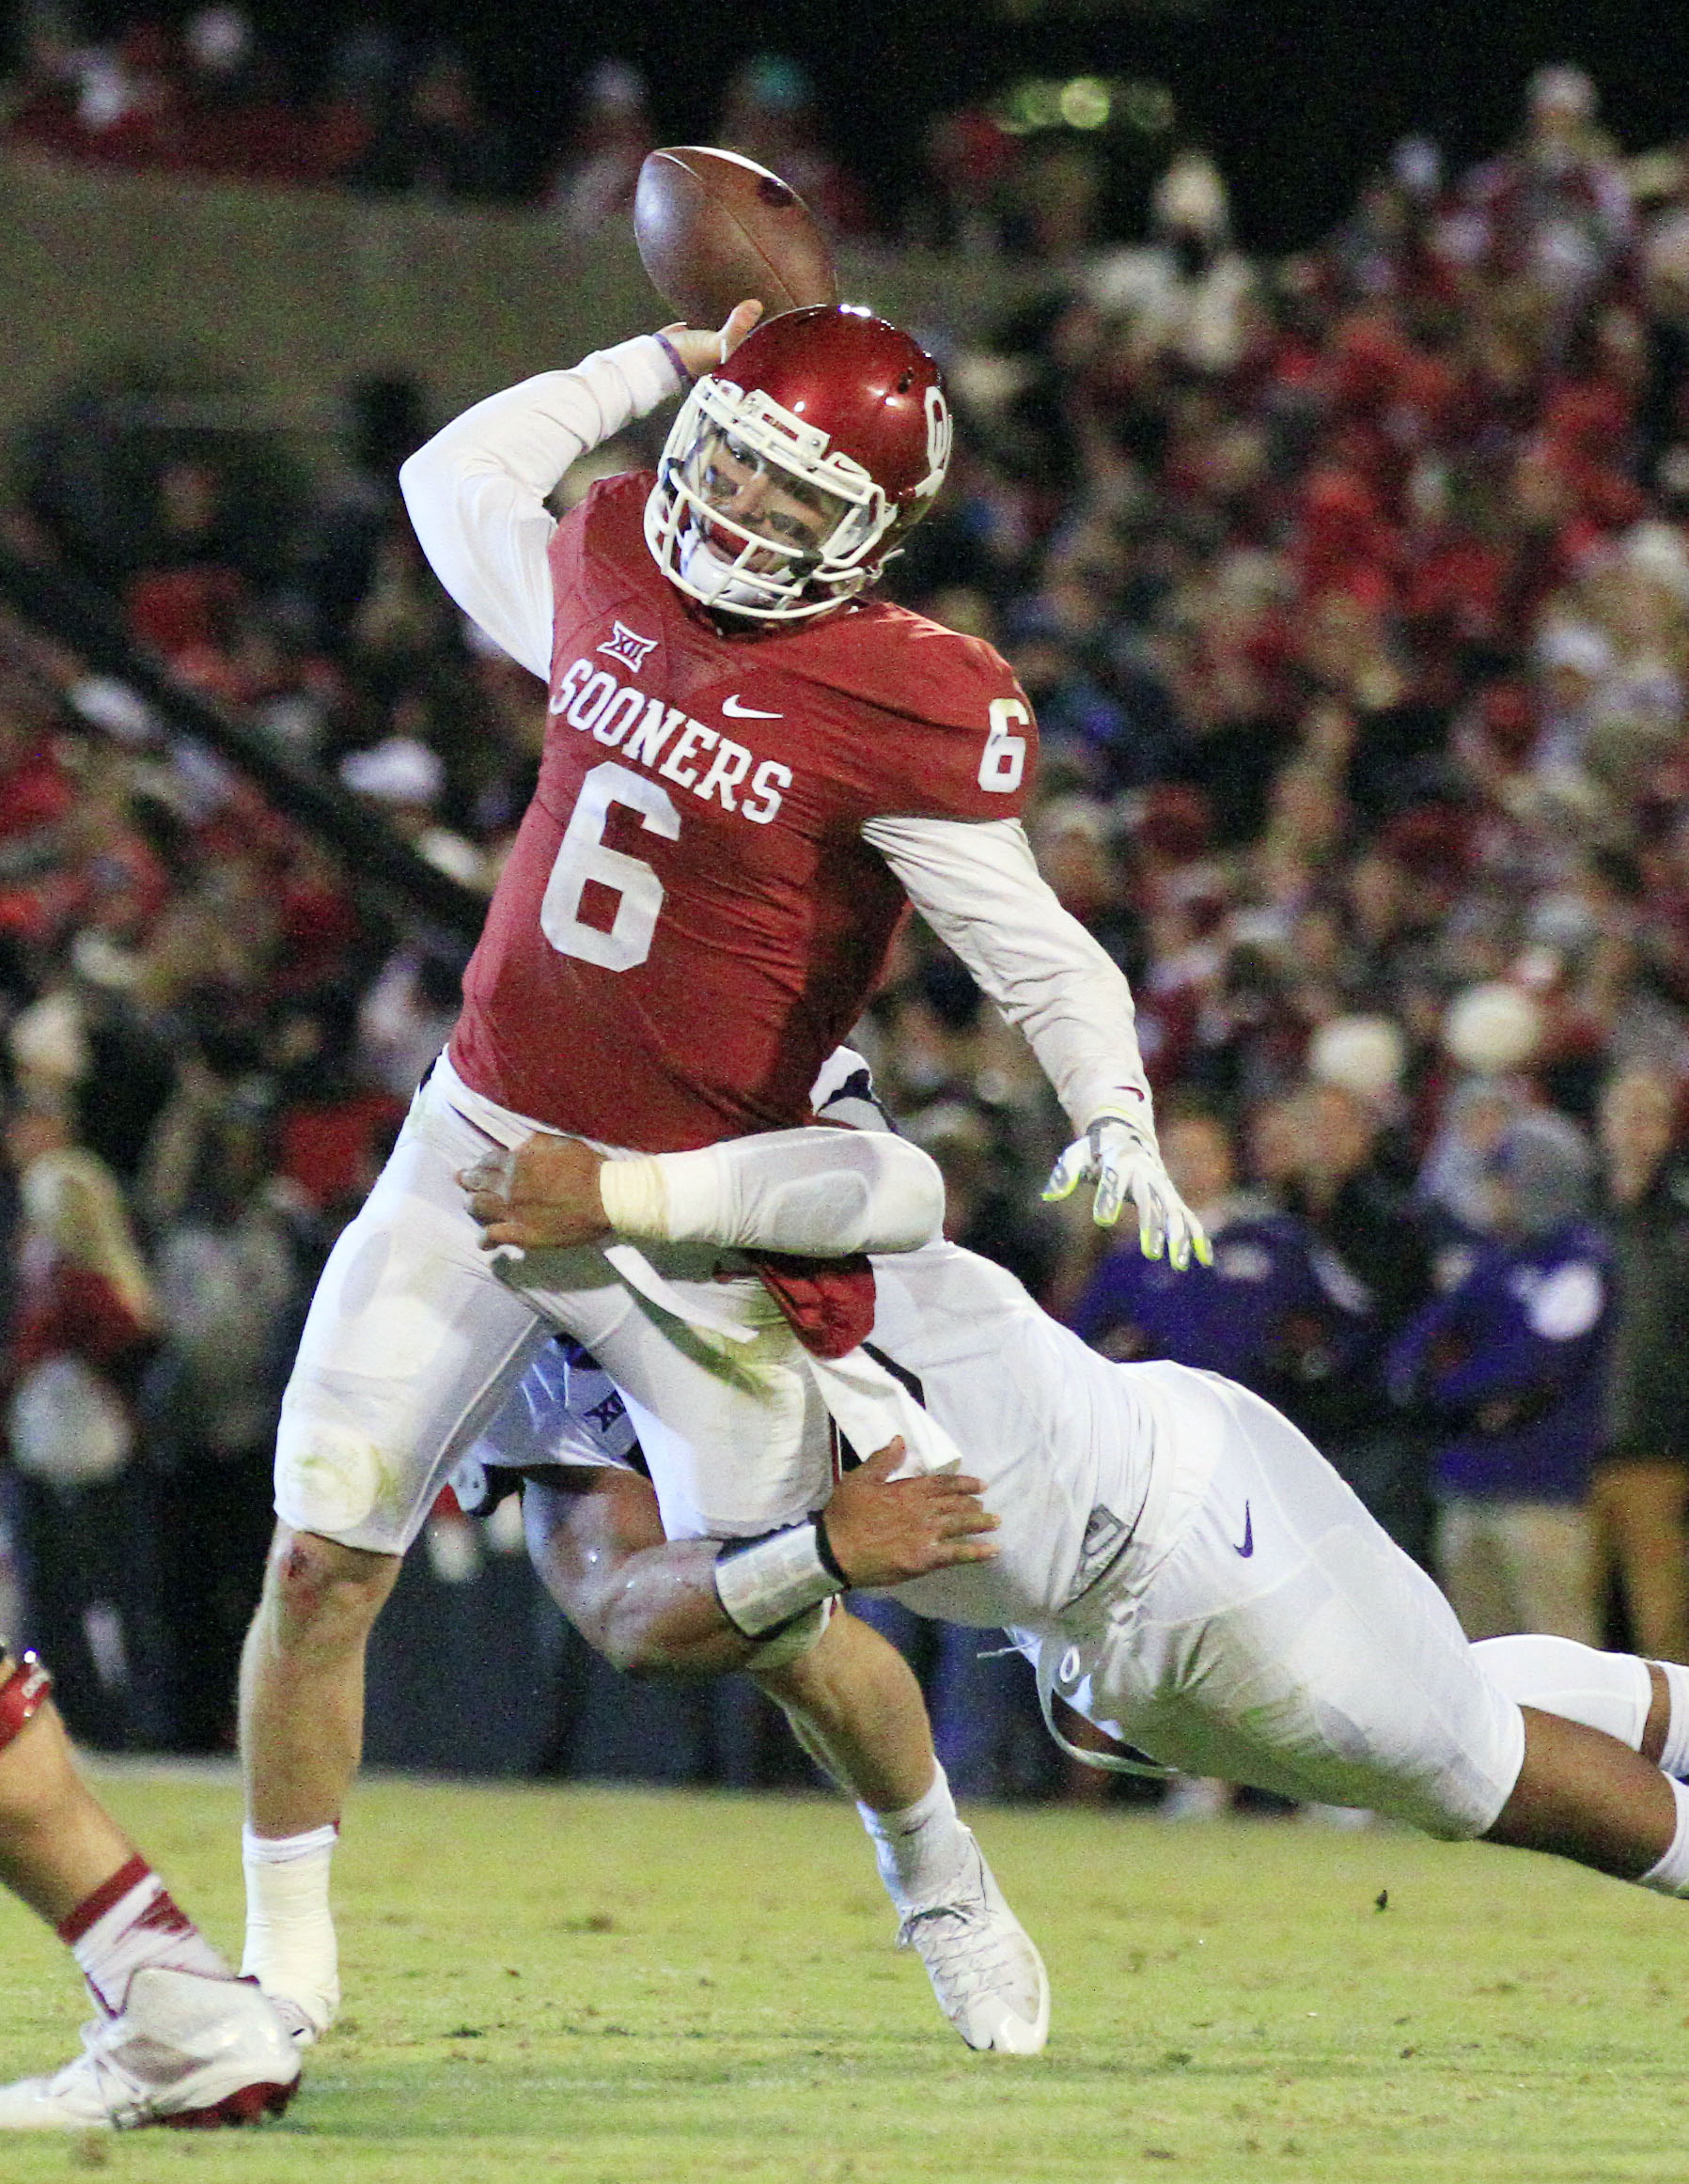 Oklahoma quarterback Baker Mayfield (6) is tackled by TCU defensive tackle Aaron Curry (95) as he passes during the second quarter of an NCAA college football game in Norman, Okla., Saturday, Nov. 21, 2015. (AP Photo/Alonzo Adams)